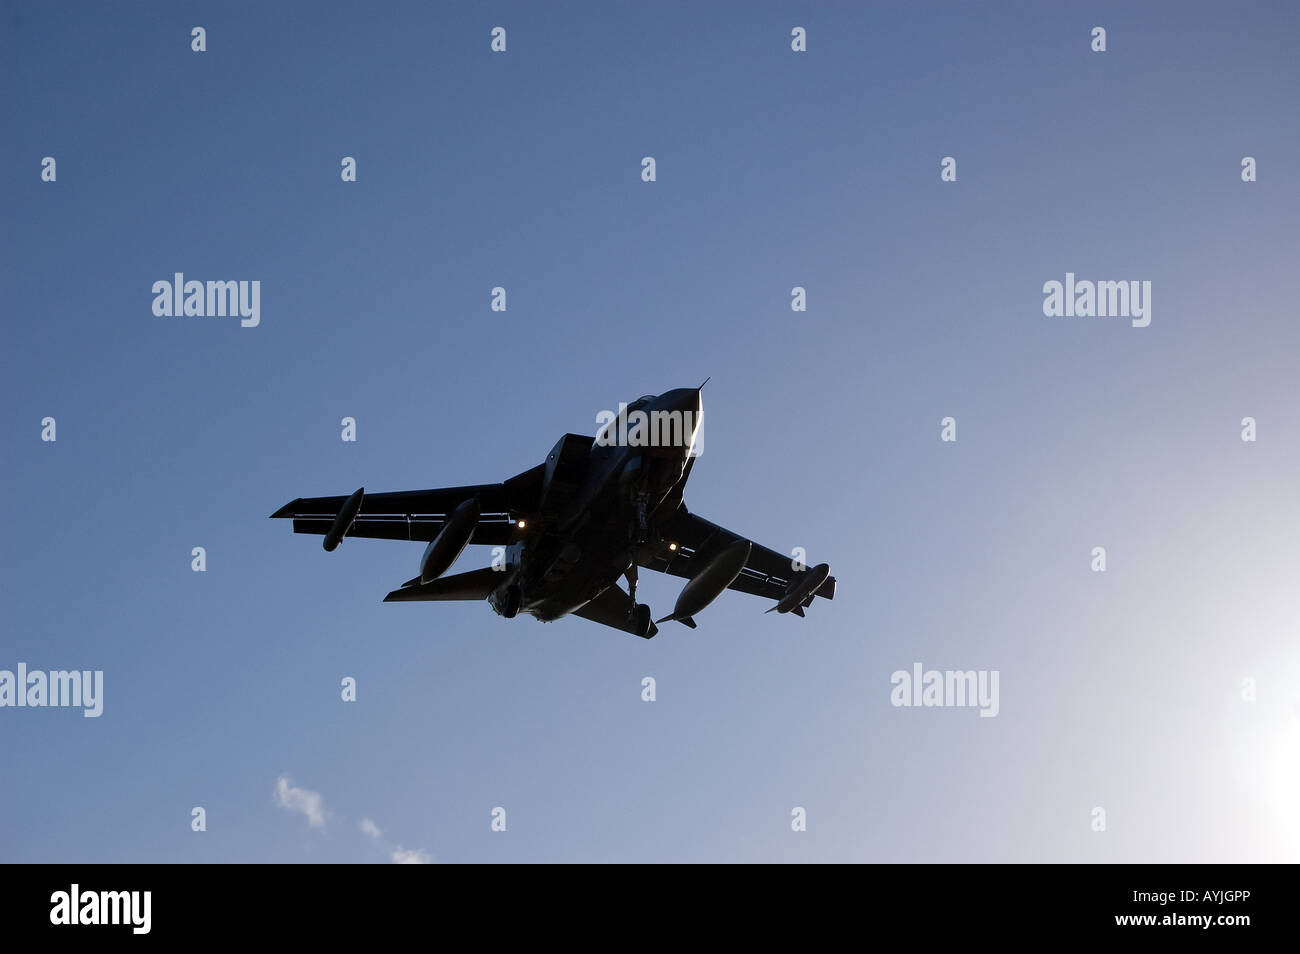 A GR4 Tornado on its final approach - Stock Image